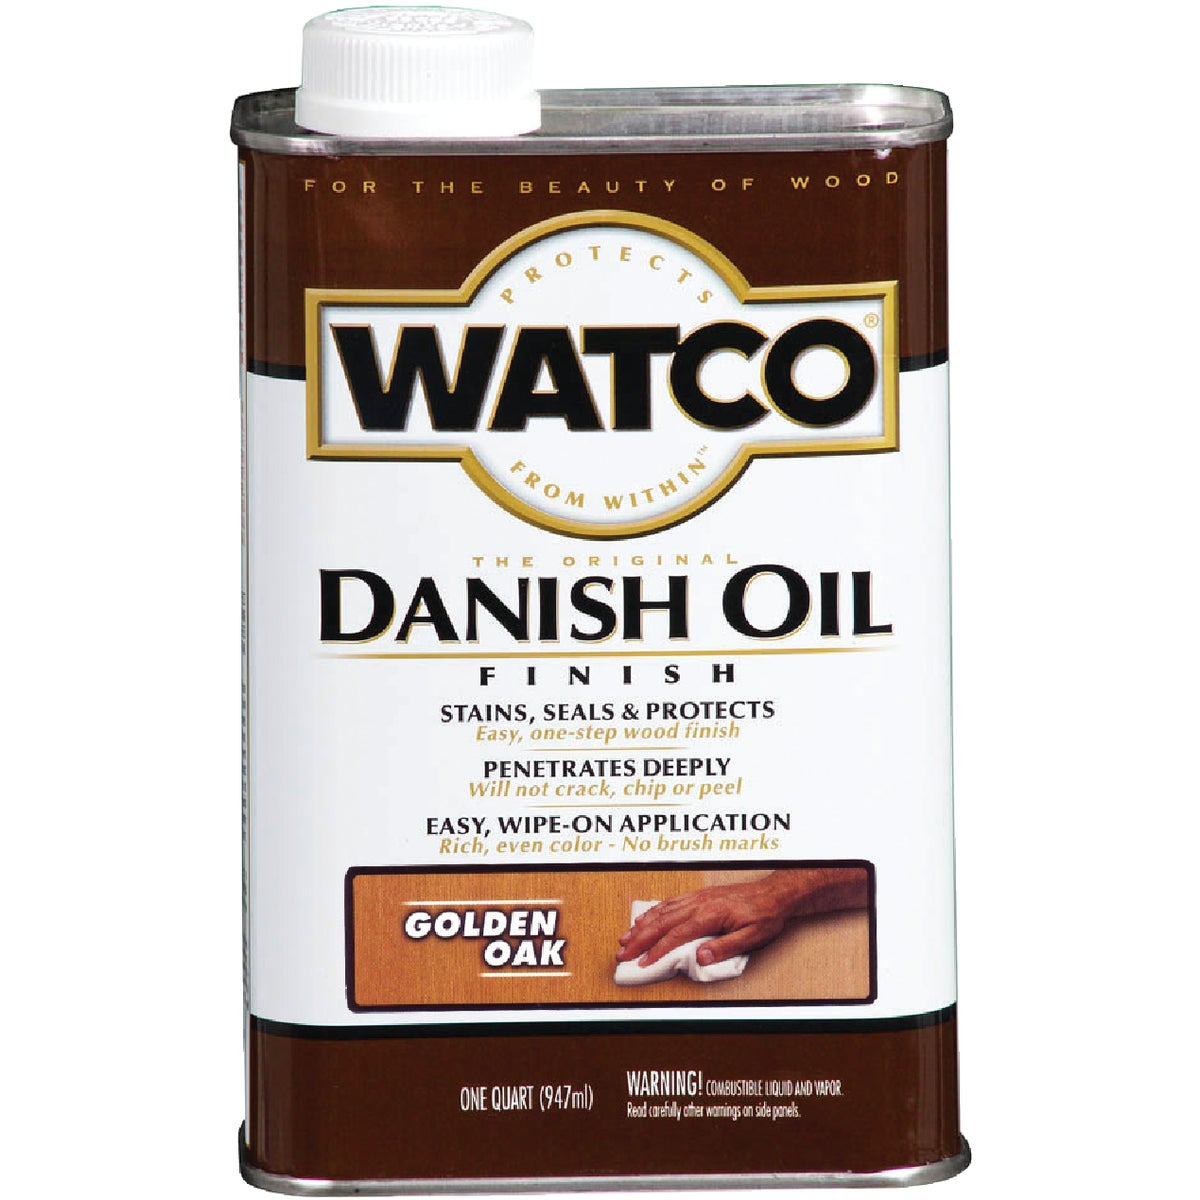 GOLDEN OAK DANISH OIL